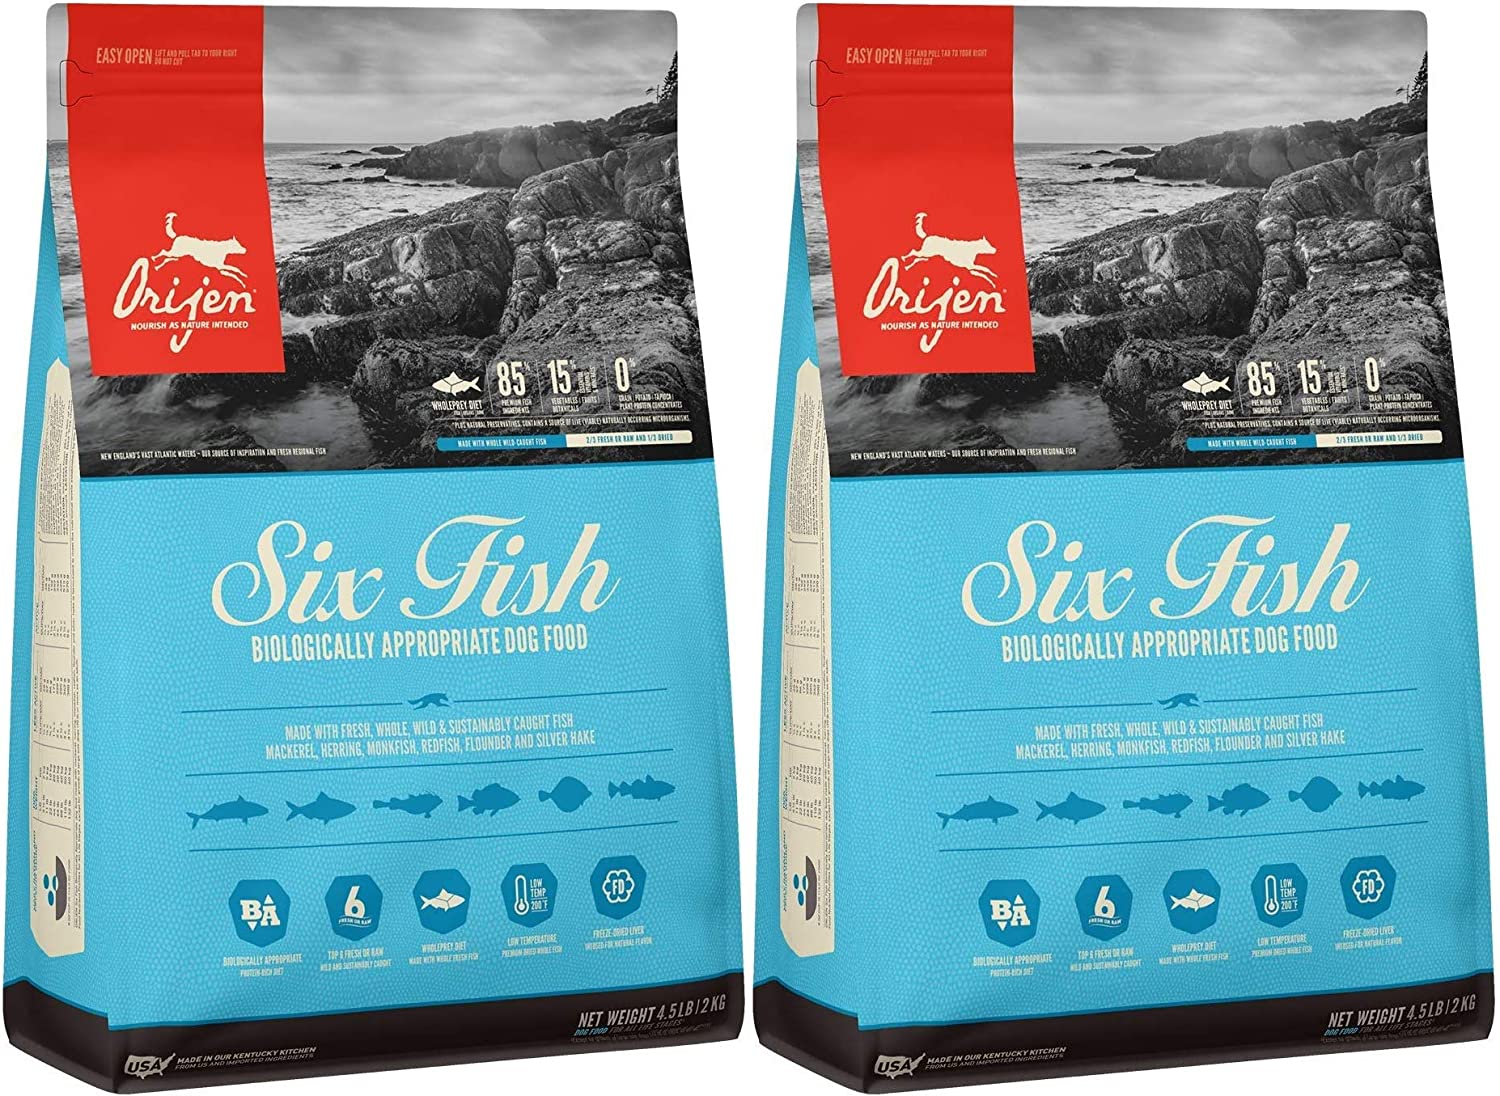 Orijen 2 Pack of Six Fish Dog Food, 4.5 Pounds Each, Made in The USA, Grain-Free, High Protein